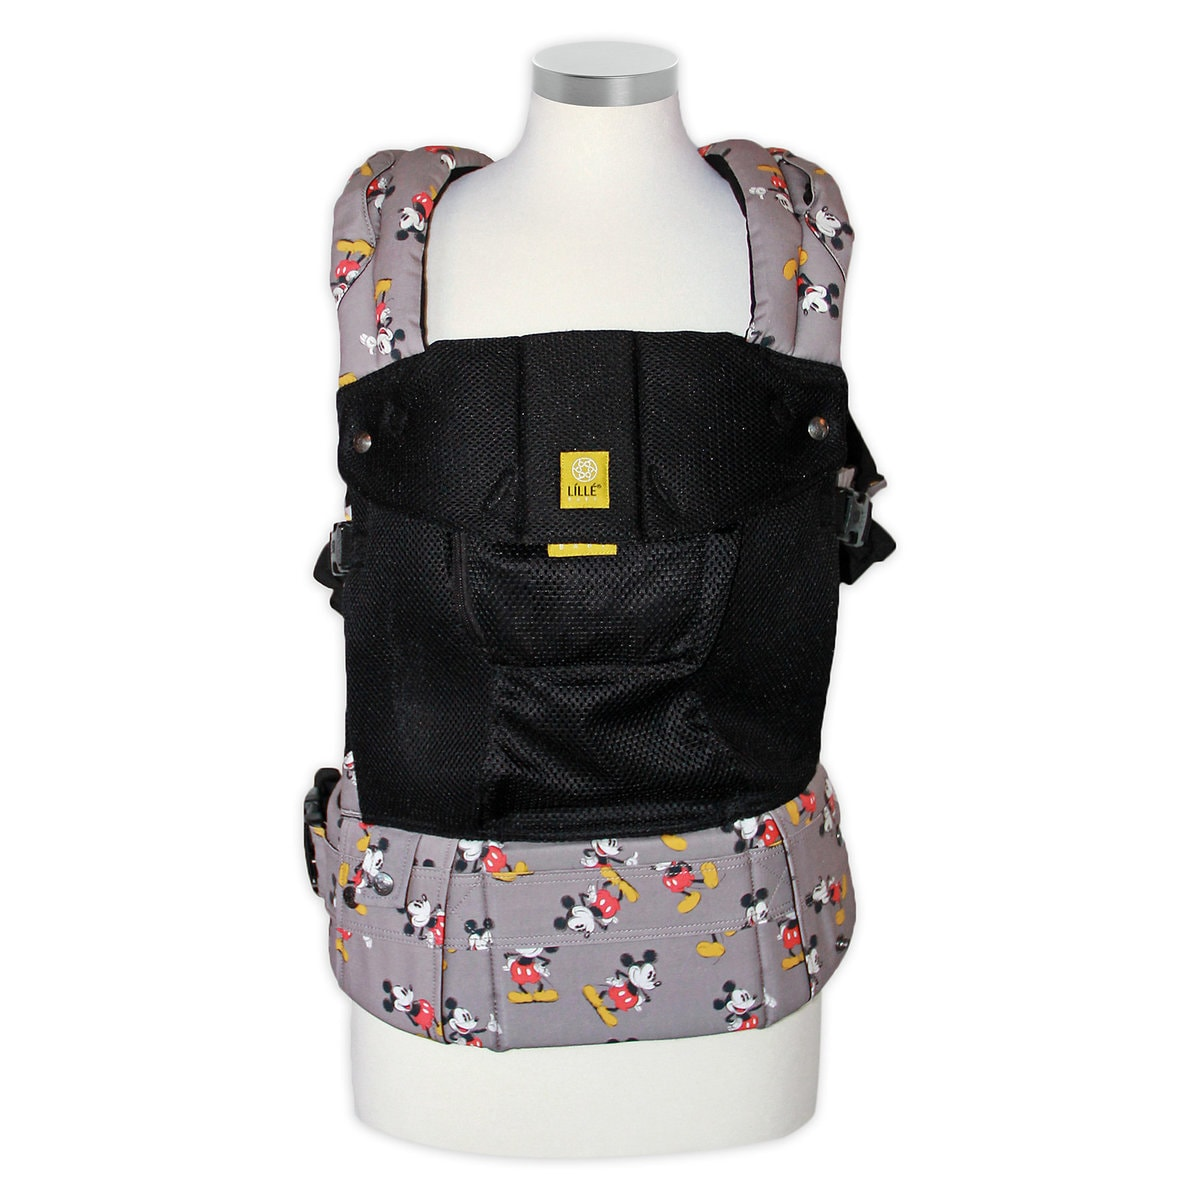 6f684a28c61 Product Image of Mickey Mouse Complete Airflow Baby Carrier by LÍLLÉbaby   1